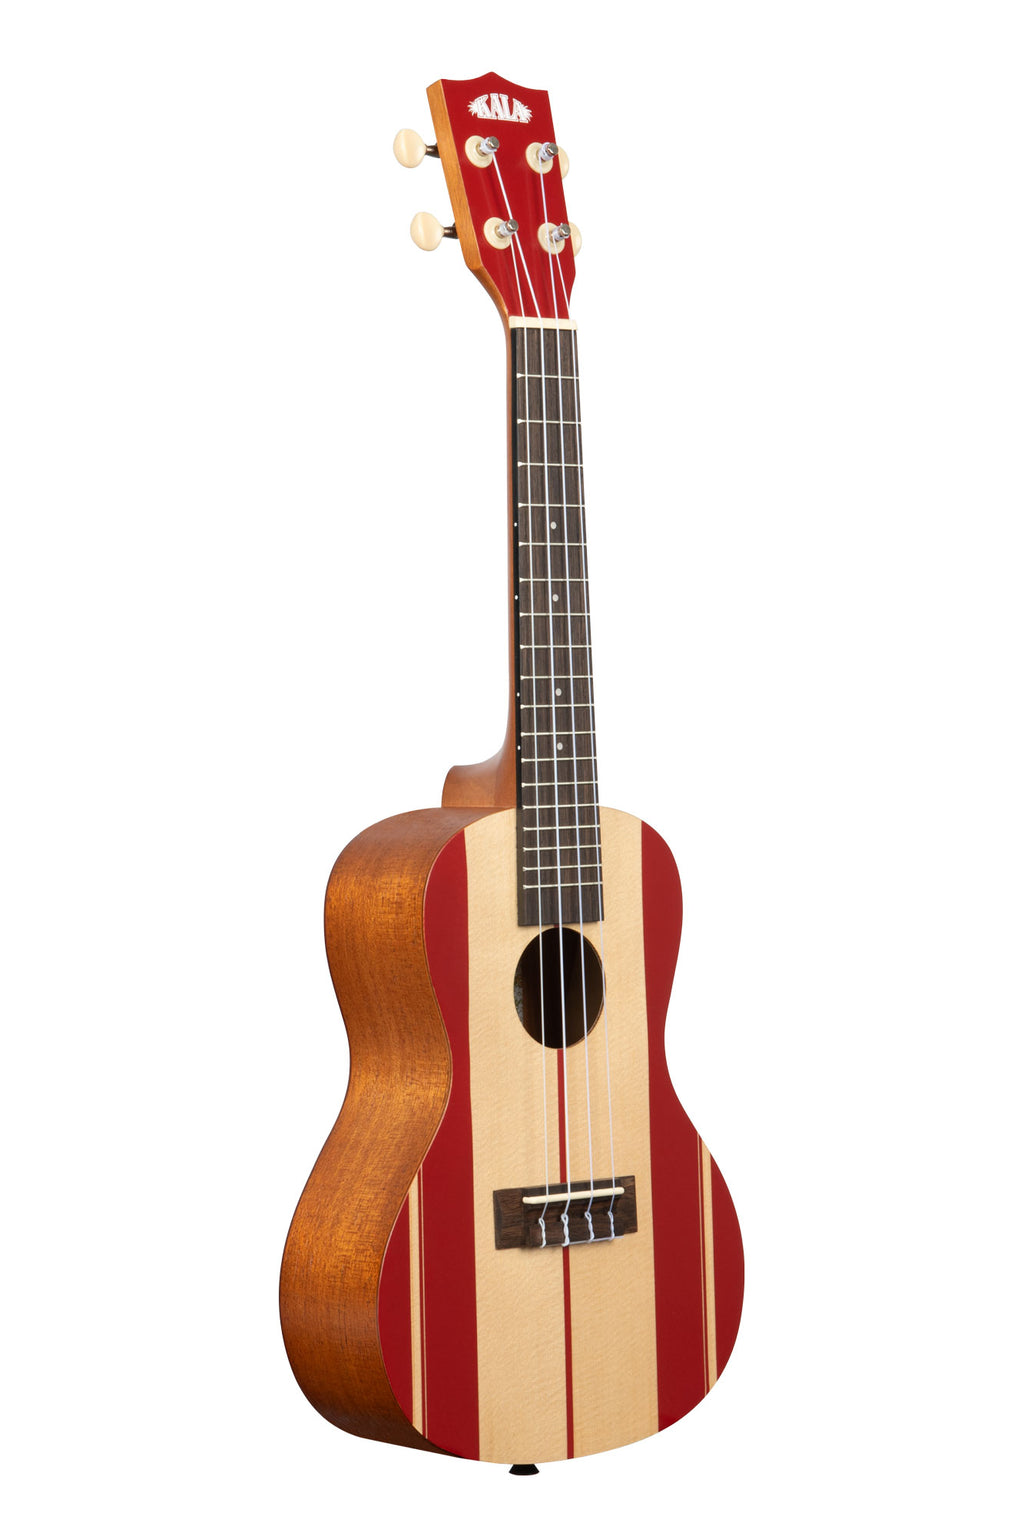 Surf's Up Concert Ukulele